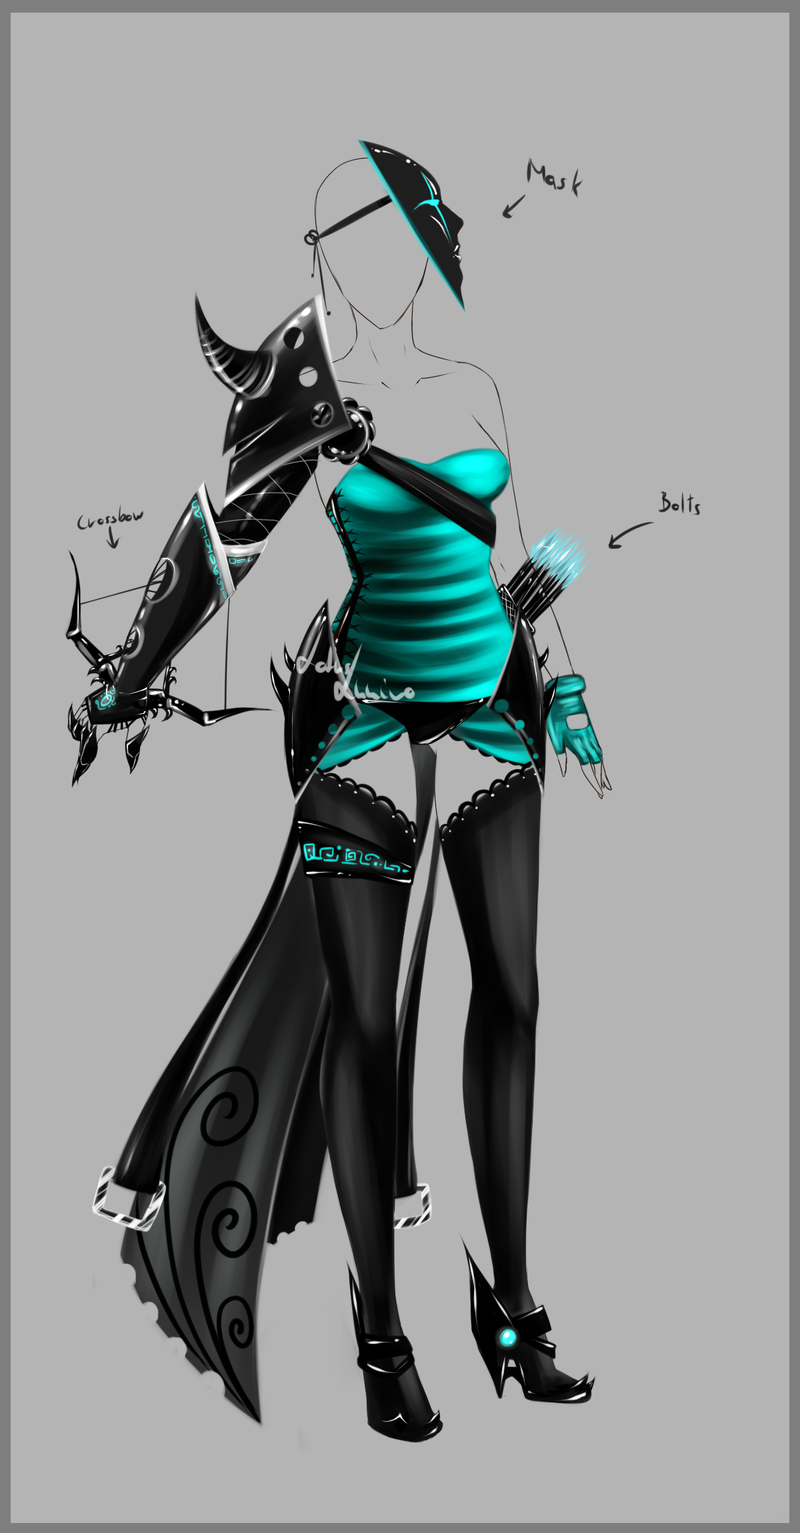 Outfit design - 83 - closed by LotusLumino.deviantart.com on @deviantART | #ANiME - FASHiON ...